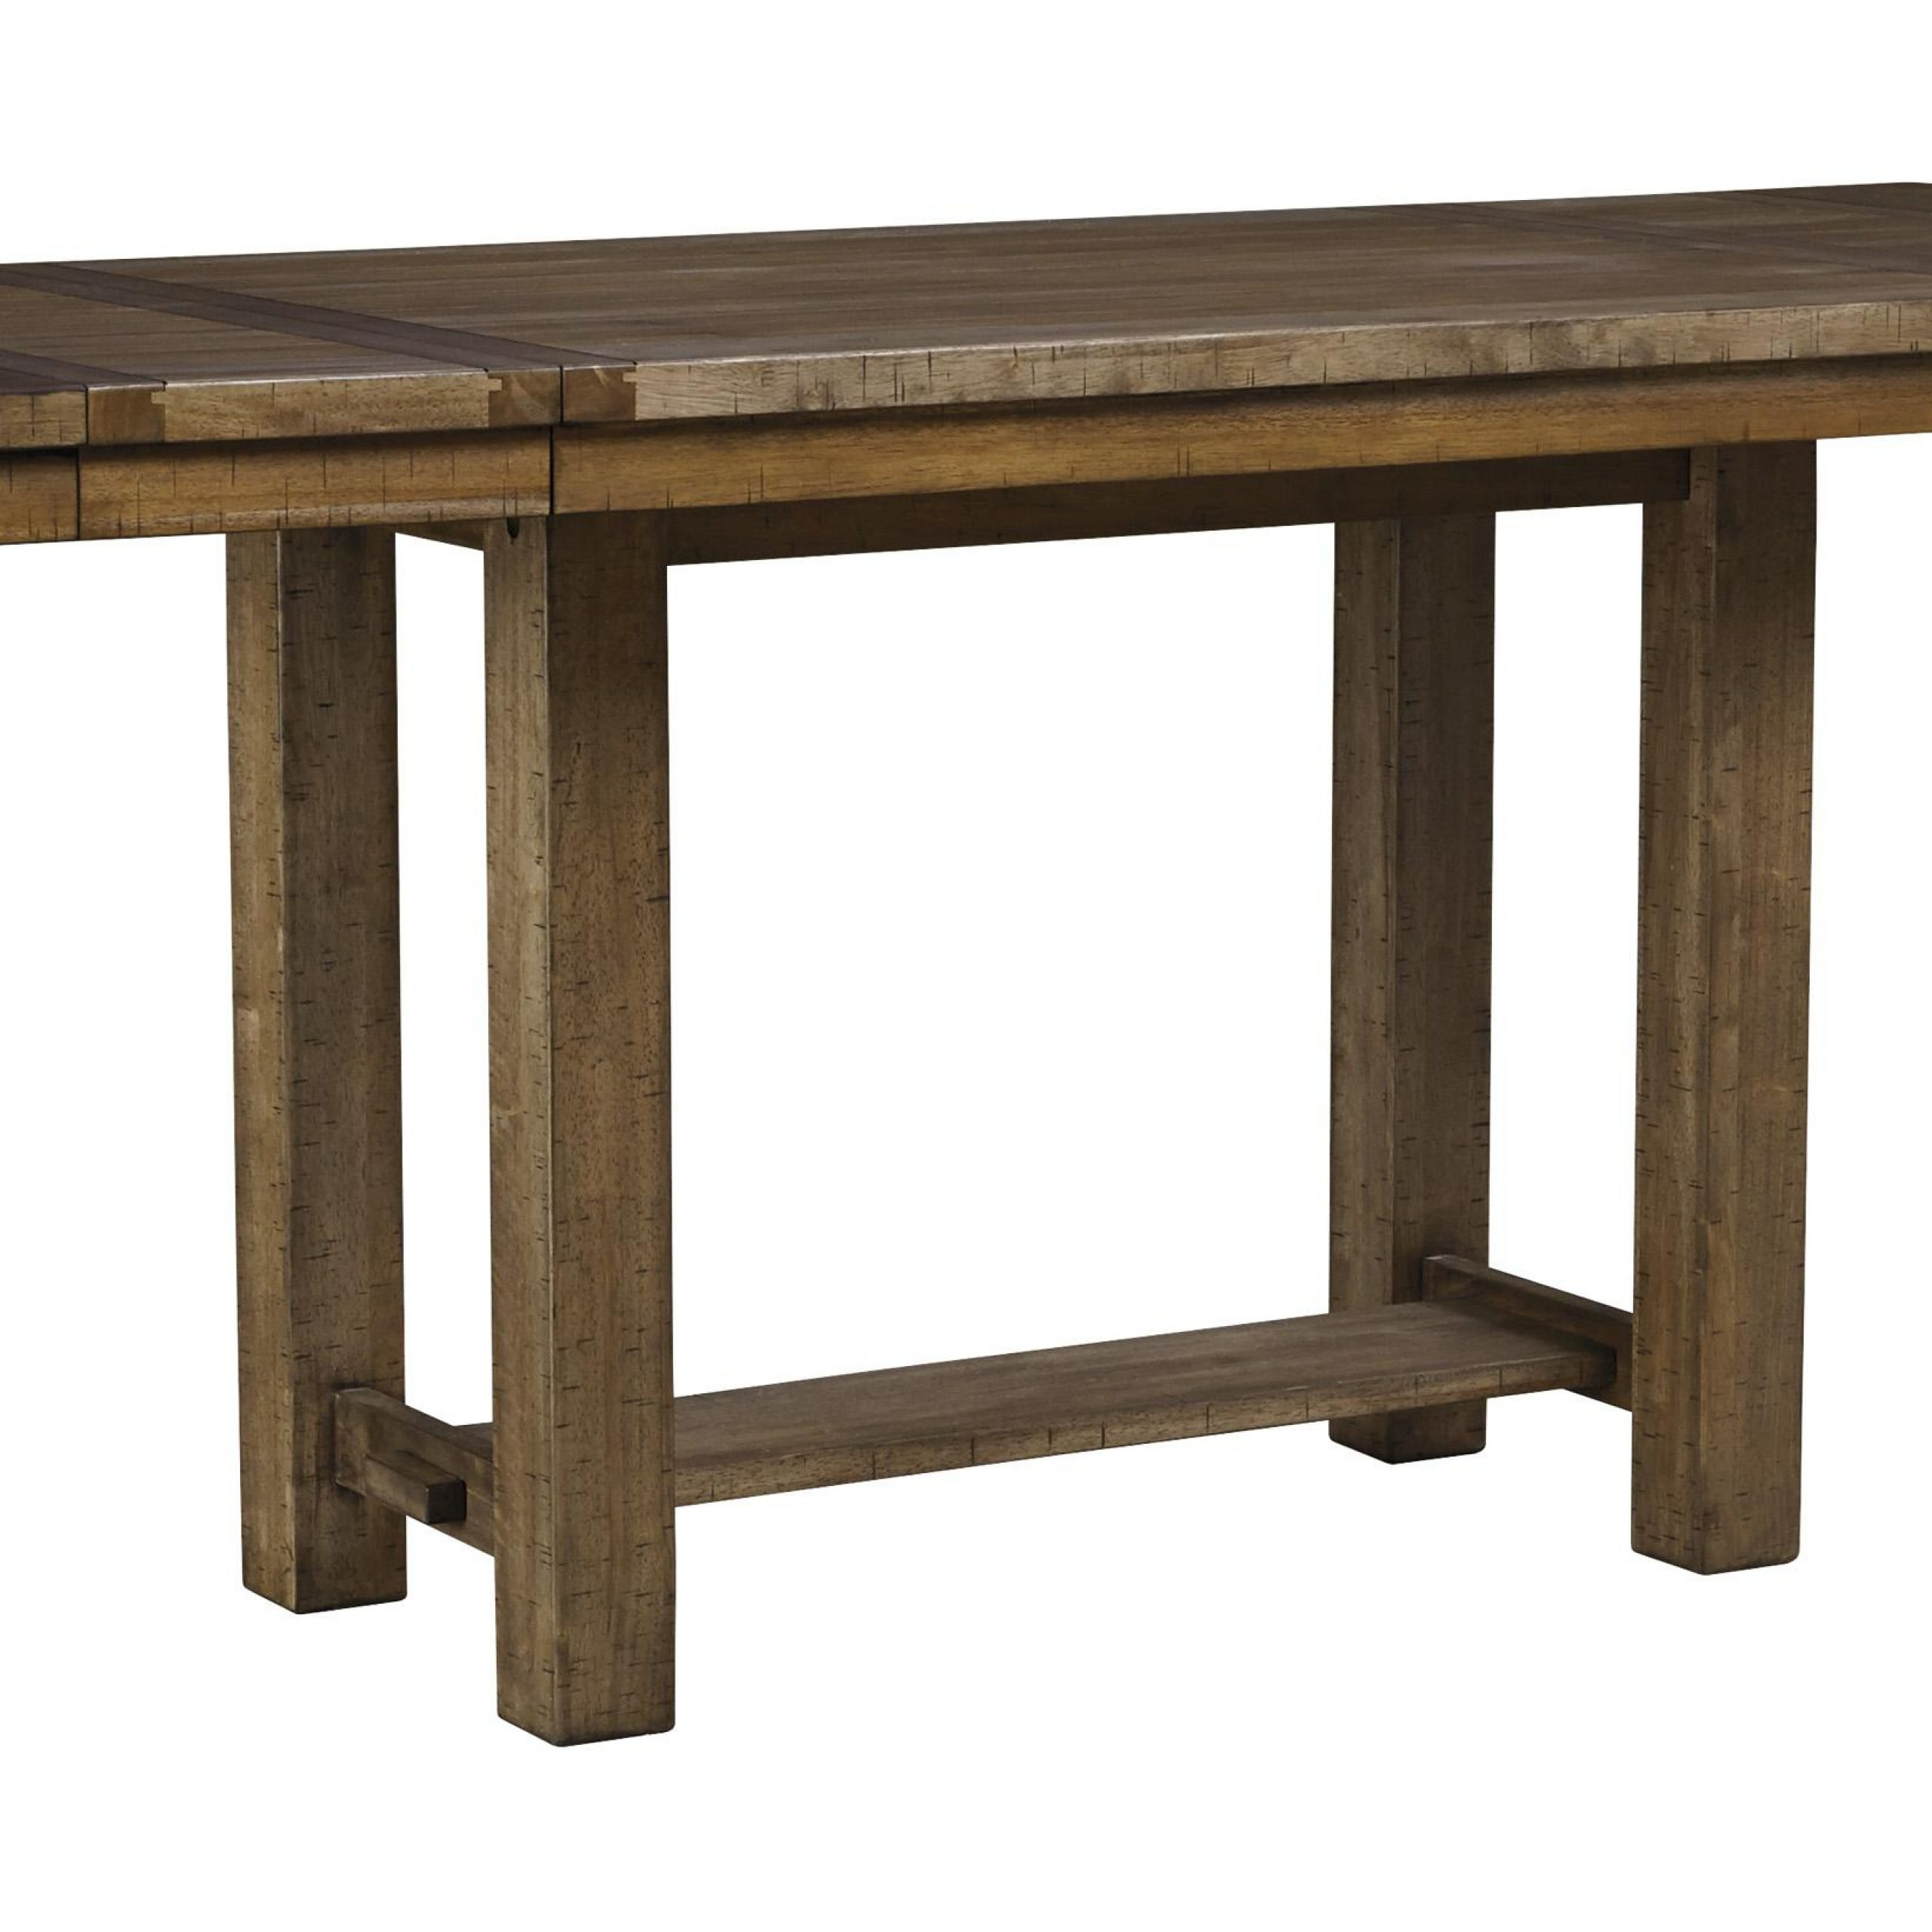 Ashley Moriville D631 Dining Room Set 7Pcs In Grayish Throughout Best And Newest Cainsville 32'' Dining Tables (View 13 of 15)